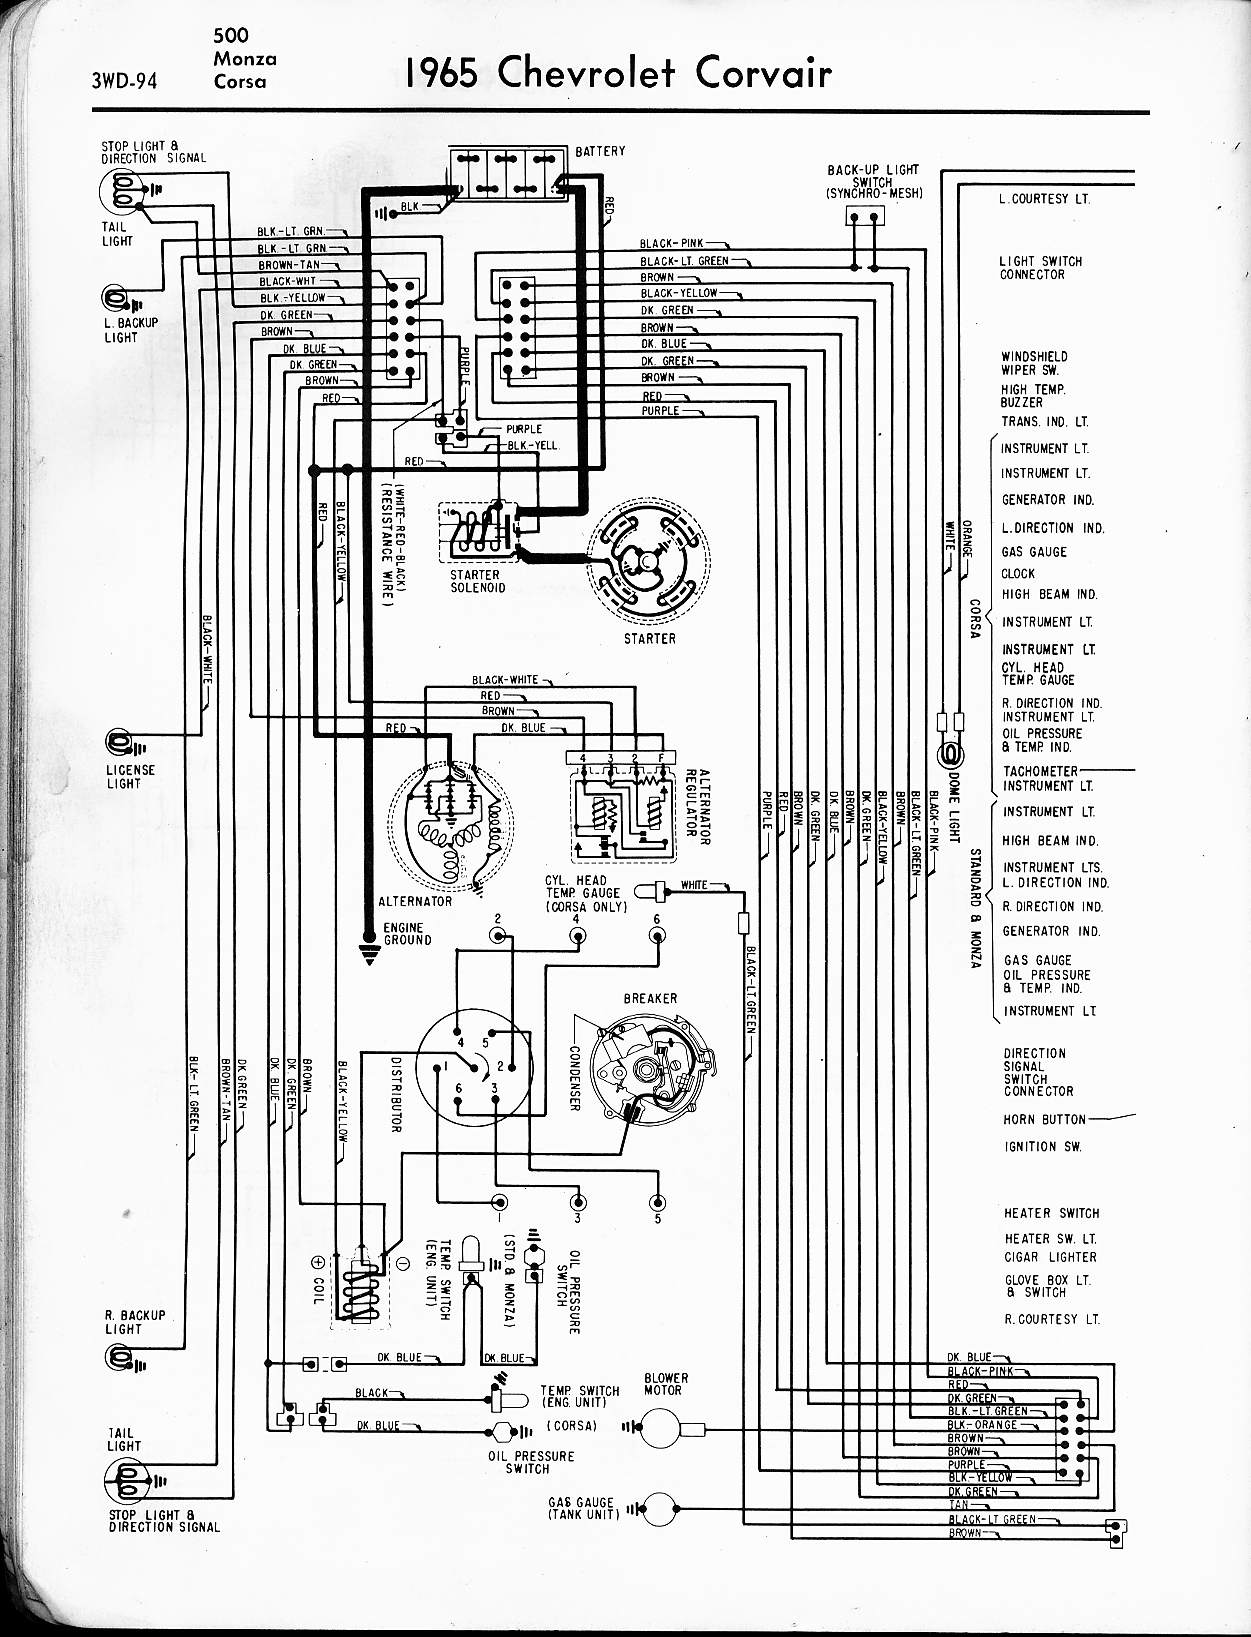 wrg 8096 1970 chevy camaro wiring harness 1965 corvair wiring harness wiring diagram pictures u2022 rh mapavick co uk 1964 impala tail light